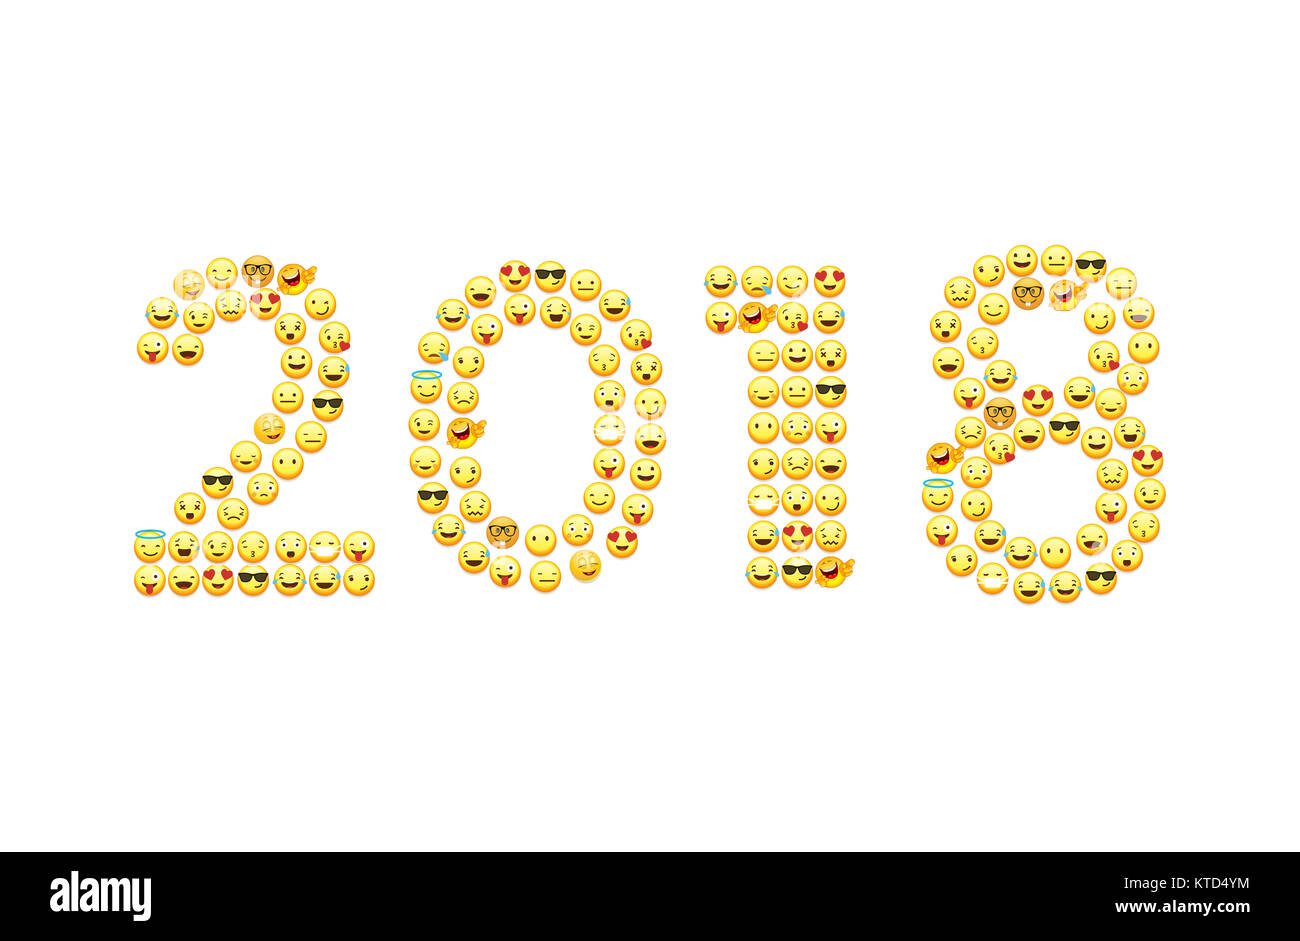 new year greetings 2018 in emoji style